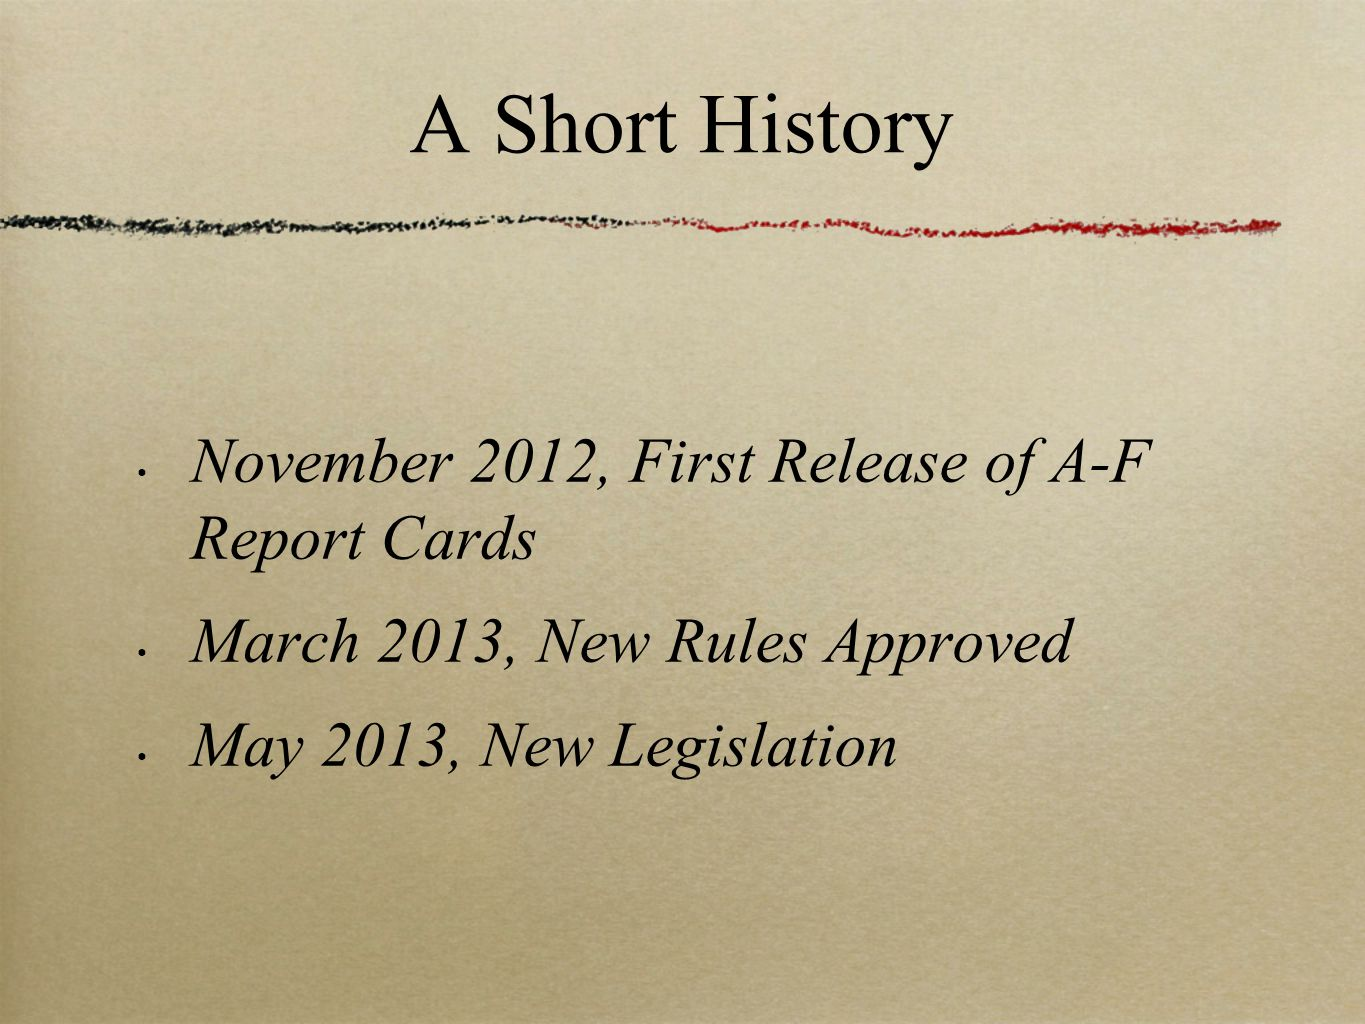 A Short History November 2012, First Release of A-F Report Cards March 2013, New Rules Approved May 2013, New Legislation